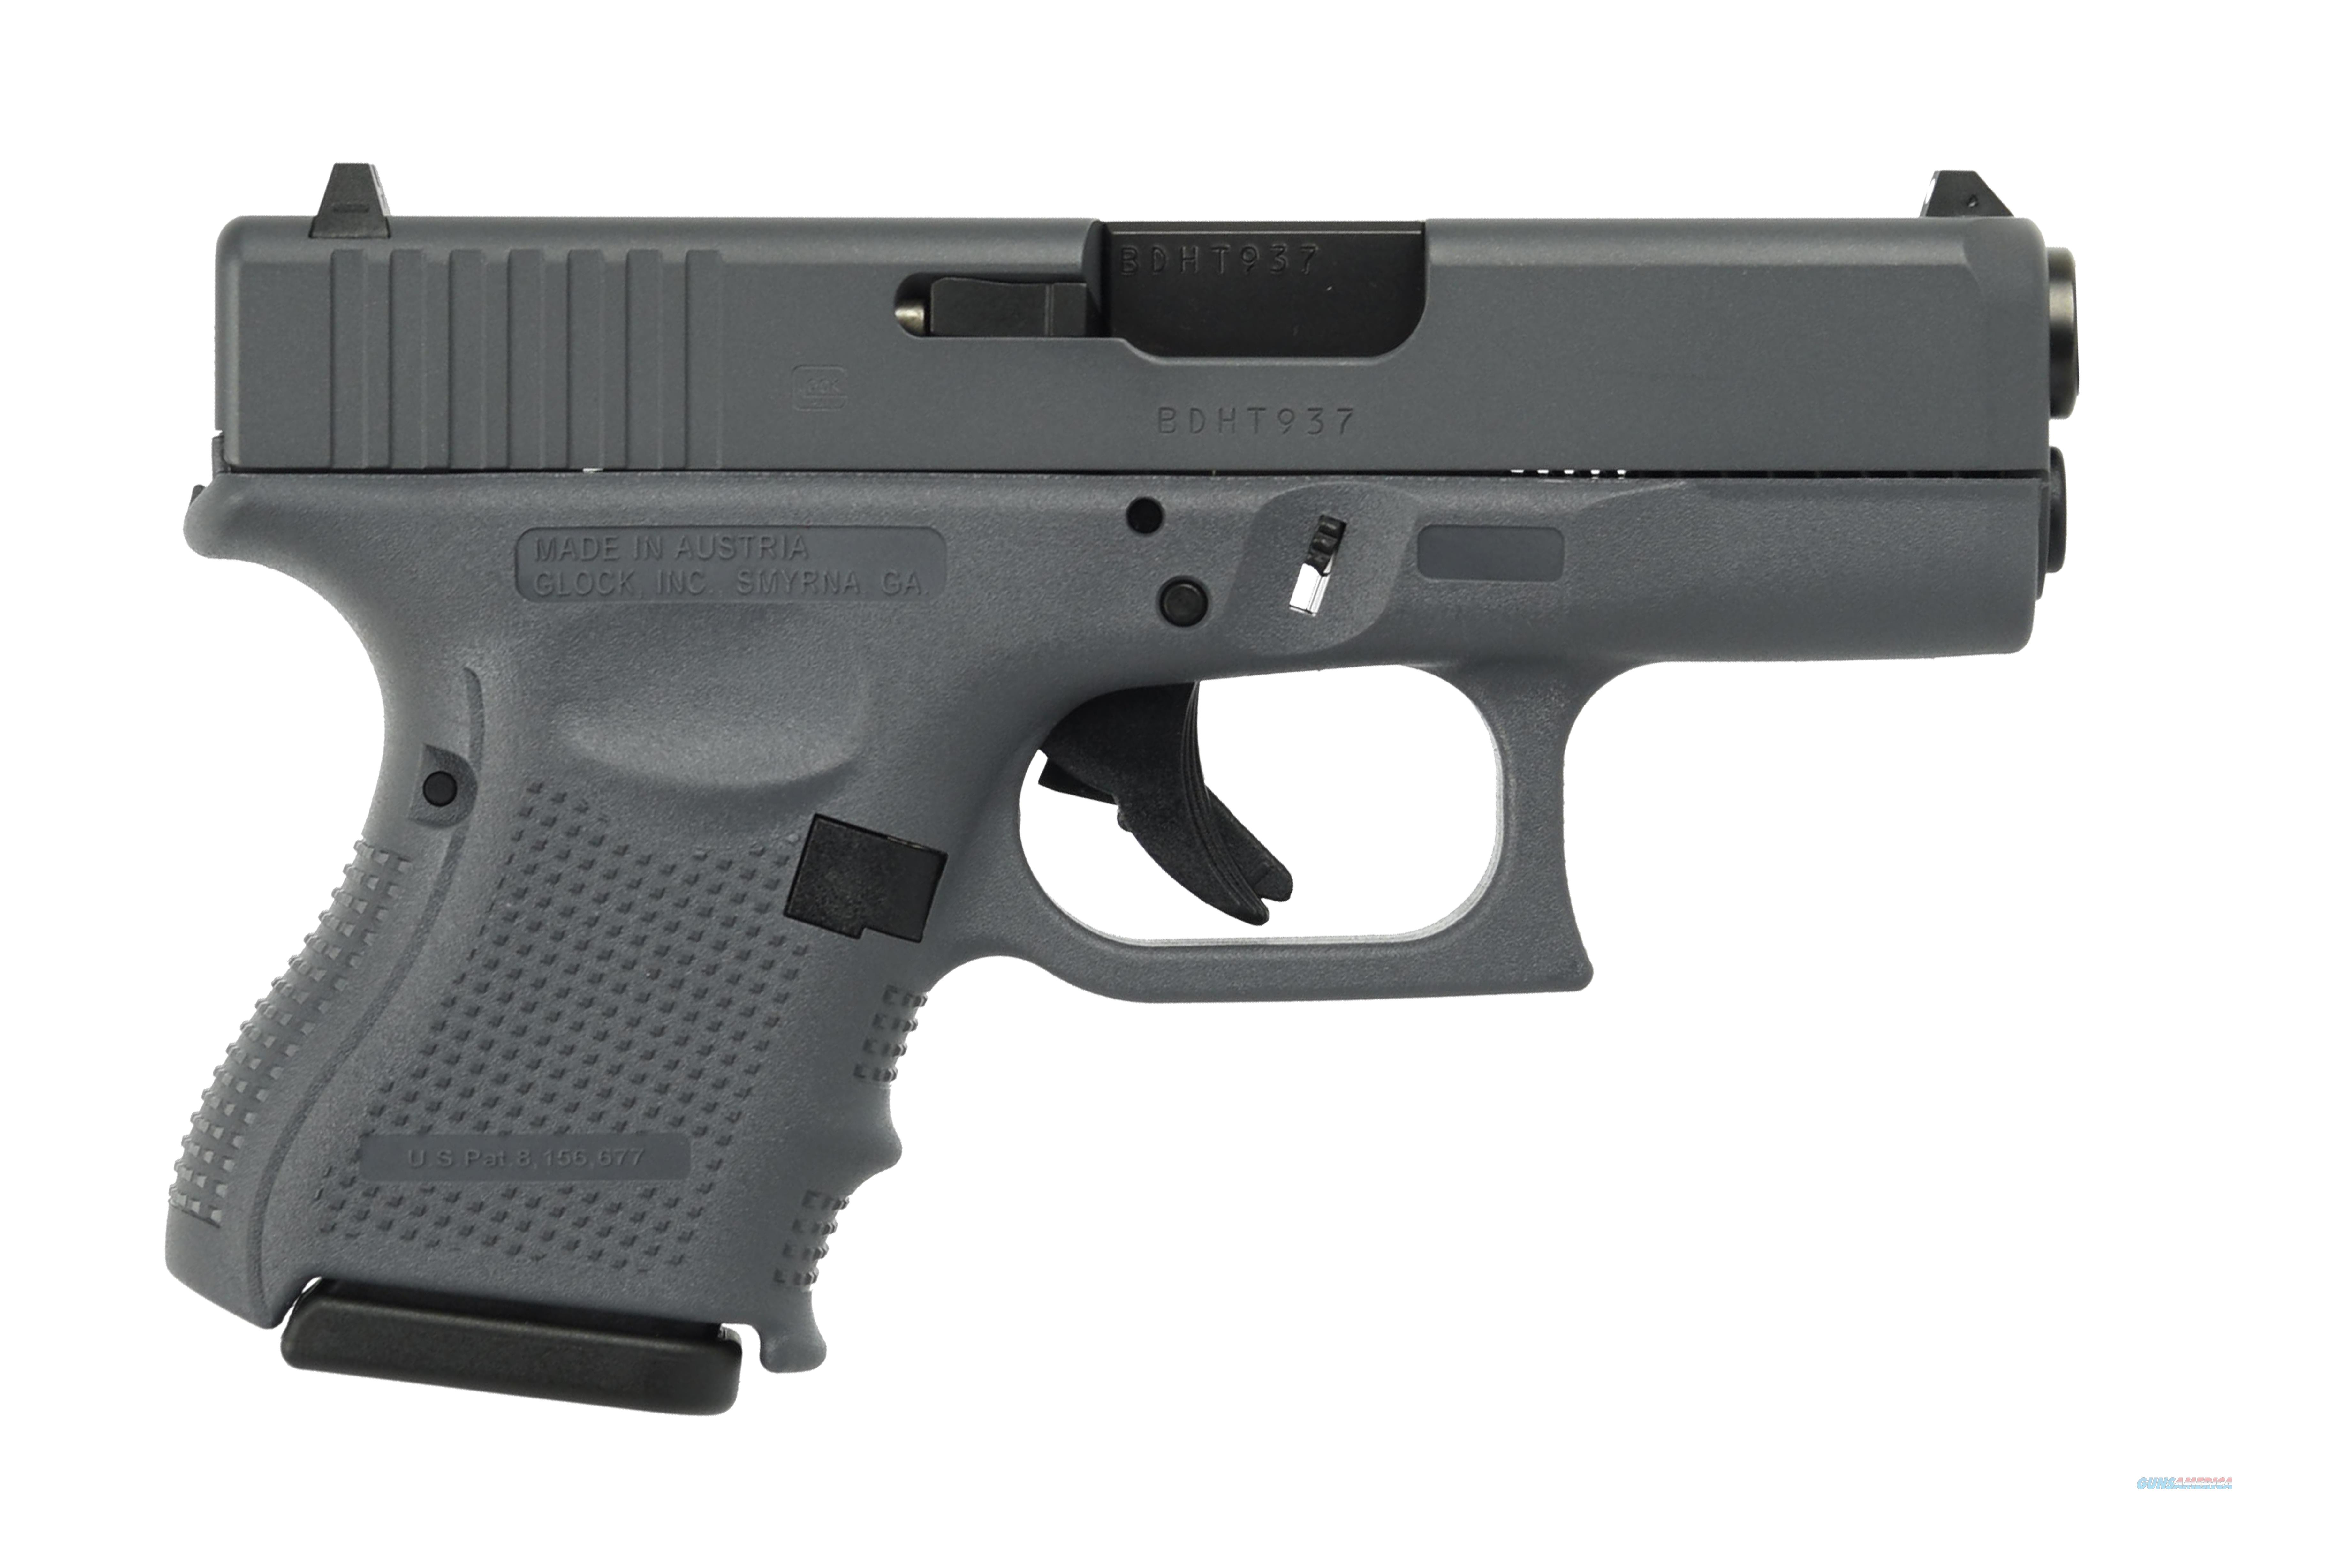 GLOCK G26 G4 FULL GRAY 9MM 10+1 FS 3-10RD MAGS | FIXED SIGHTS  Guns > Pistols > Glock Pistols > 26/27